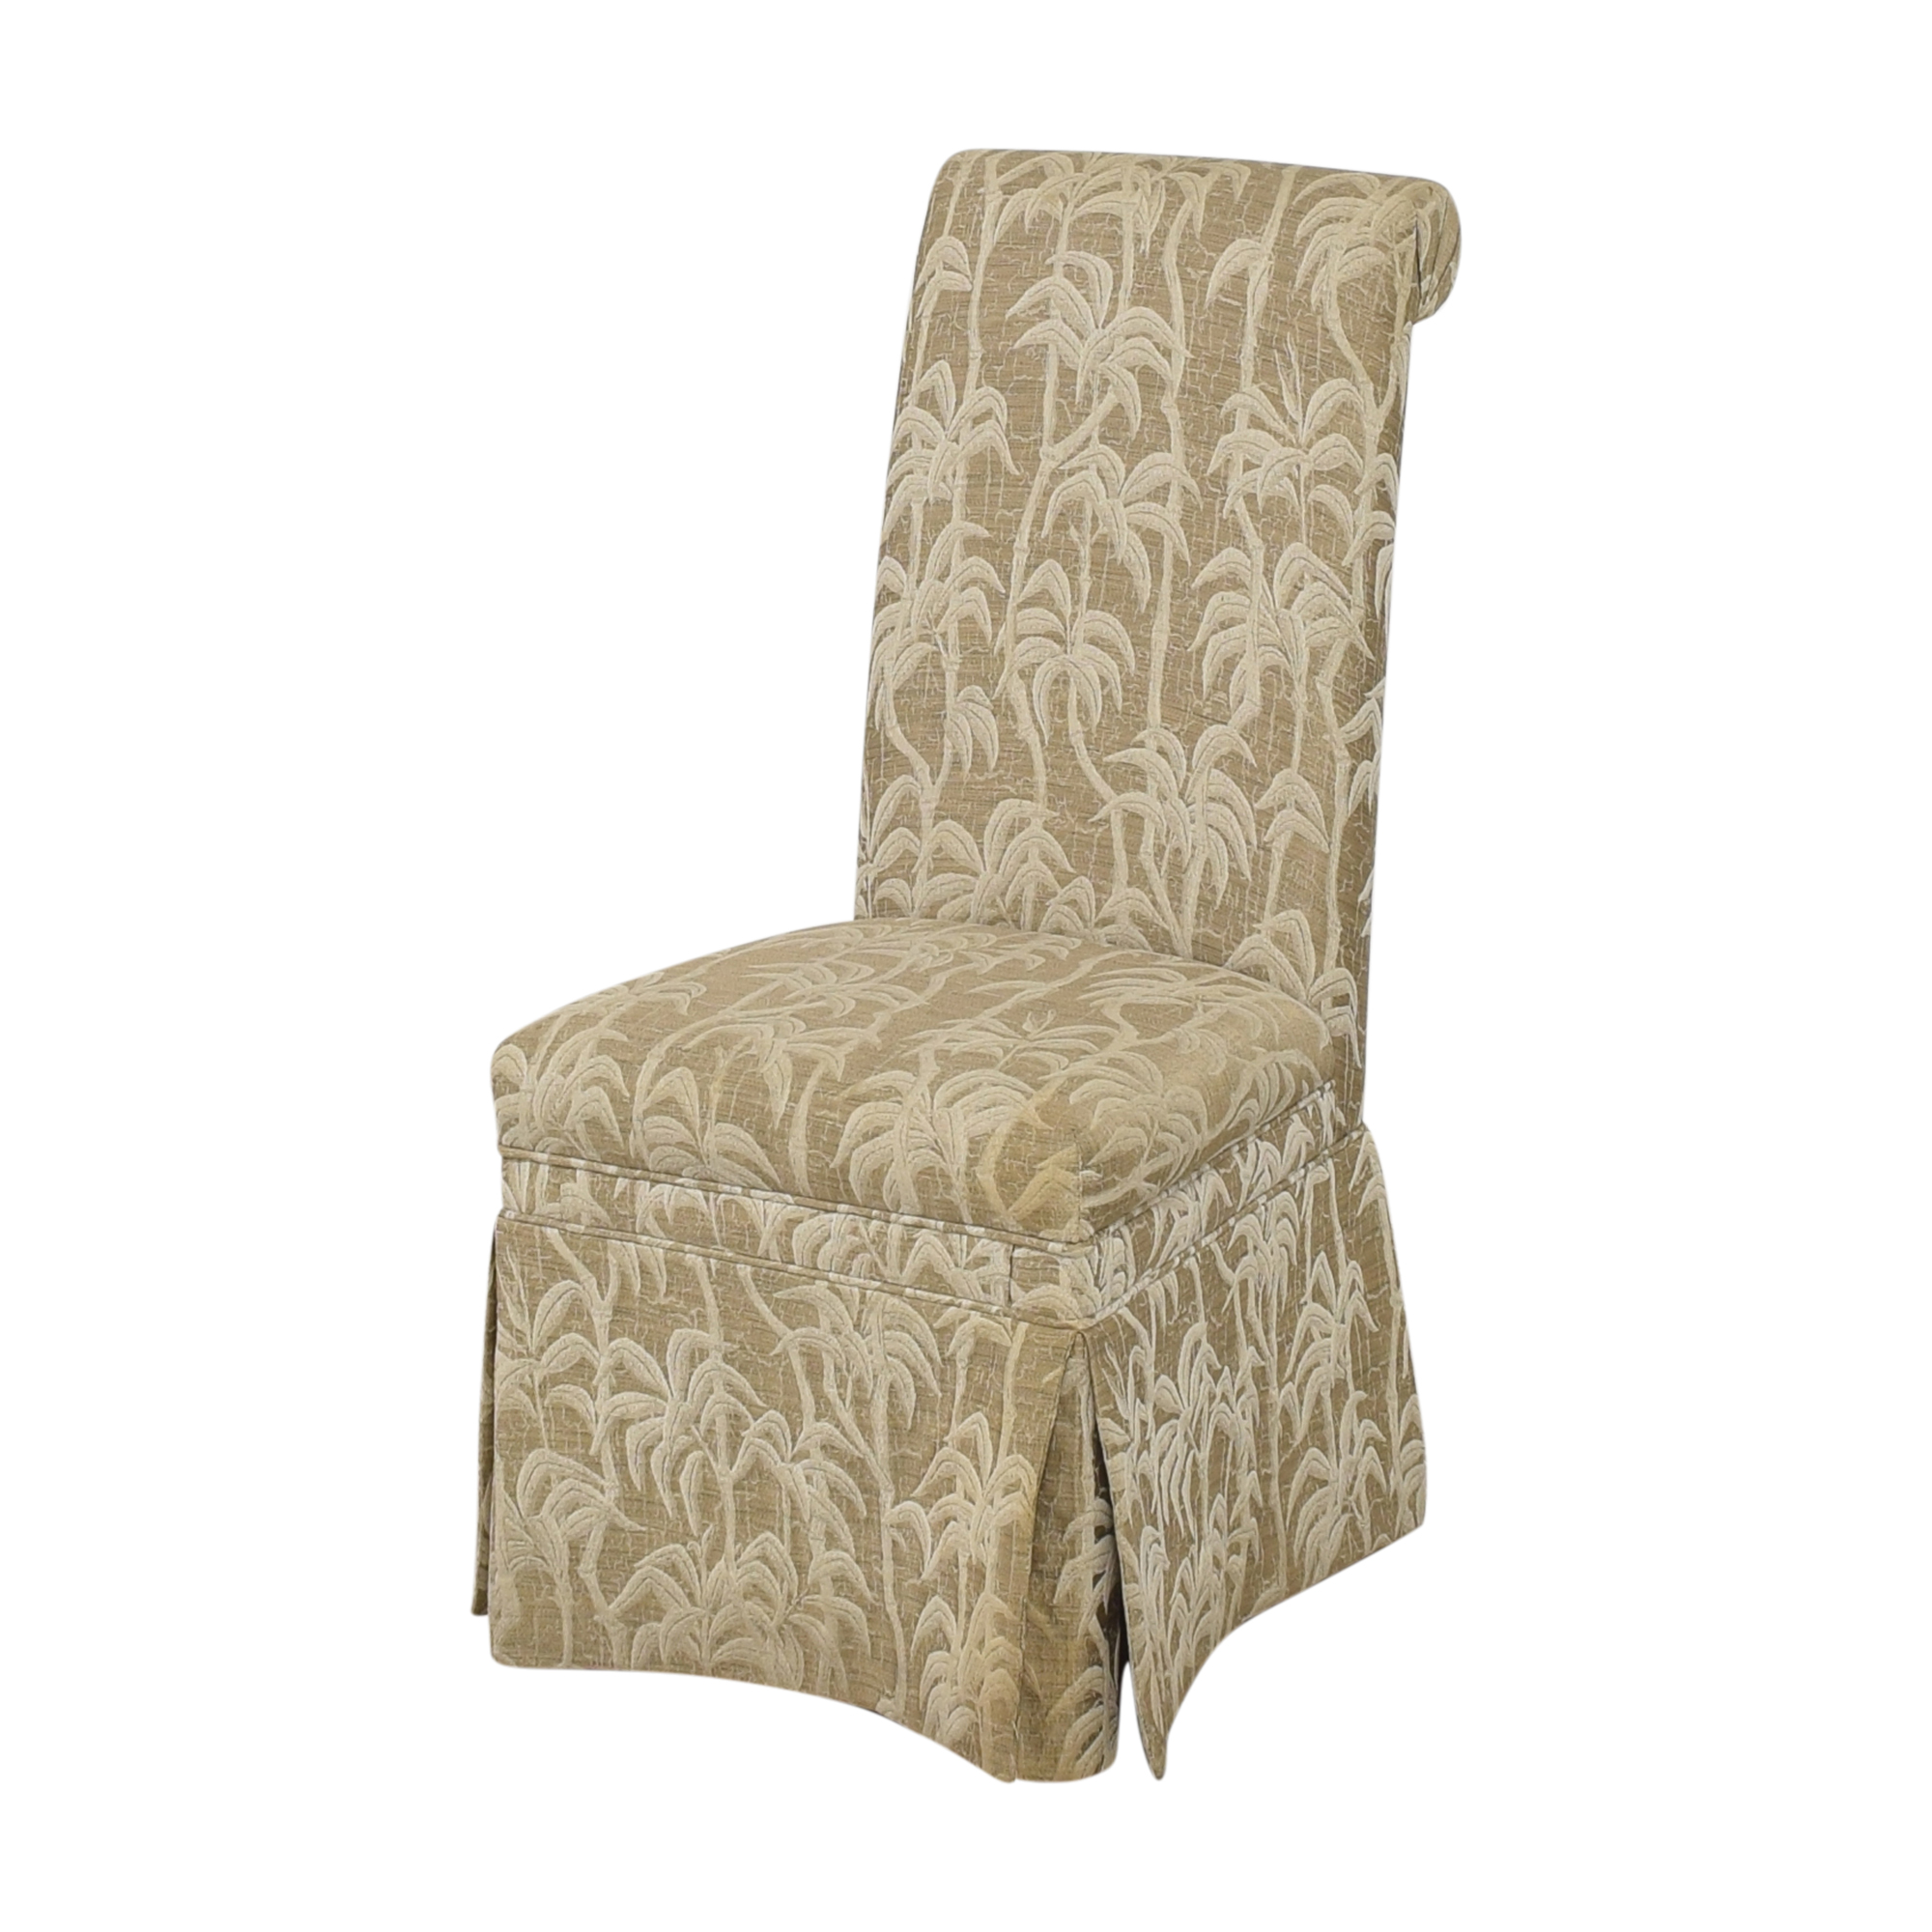 Palm Tree Scroll Back Dining Chairs dimensions